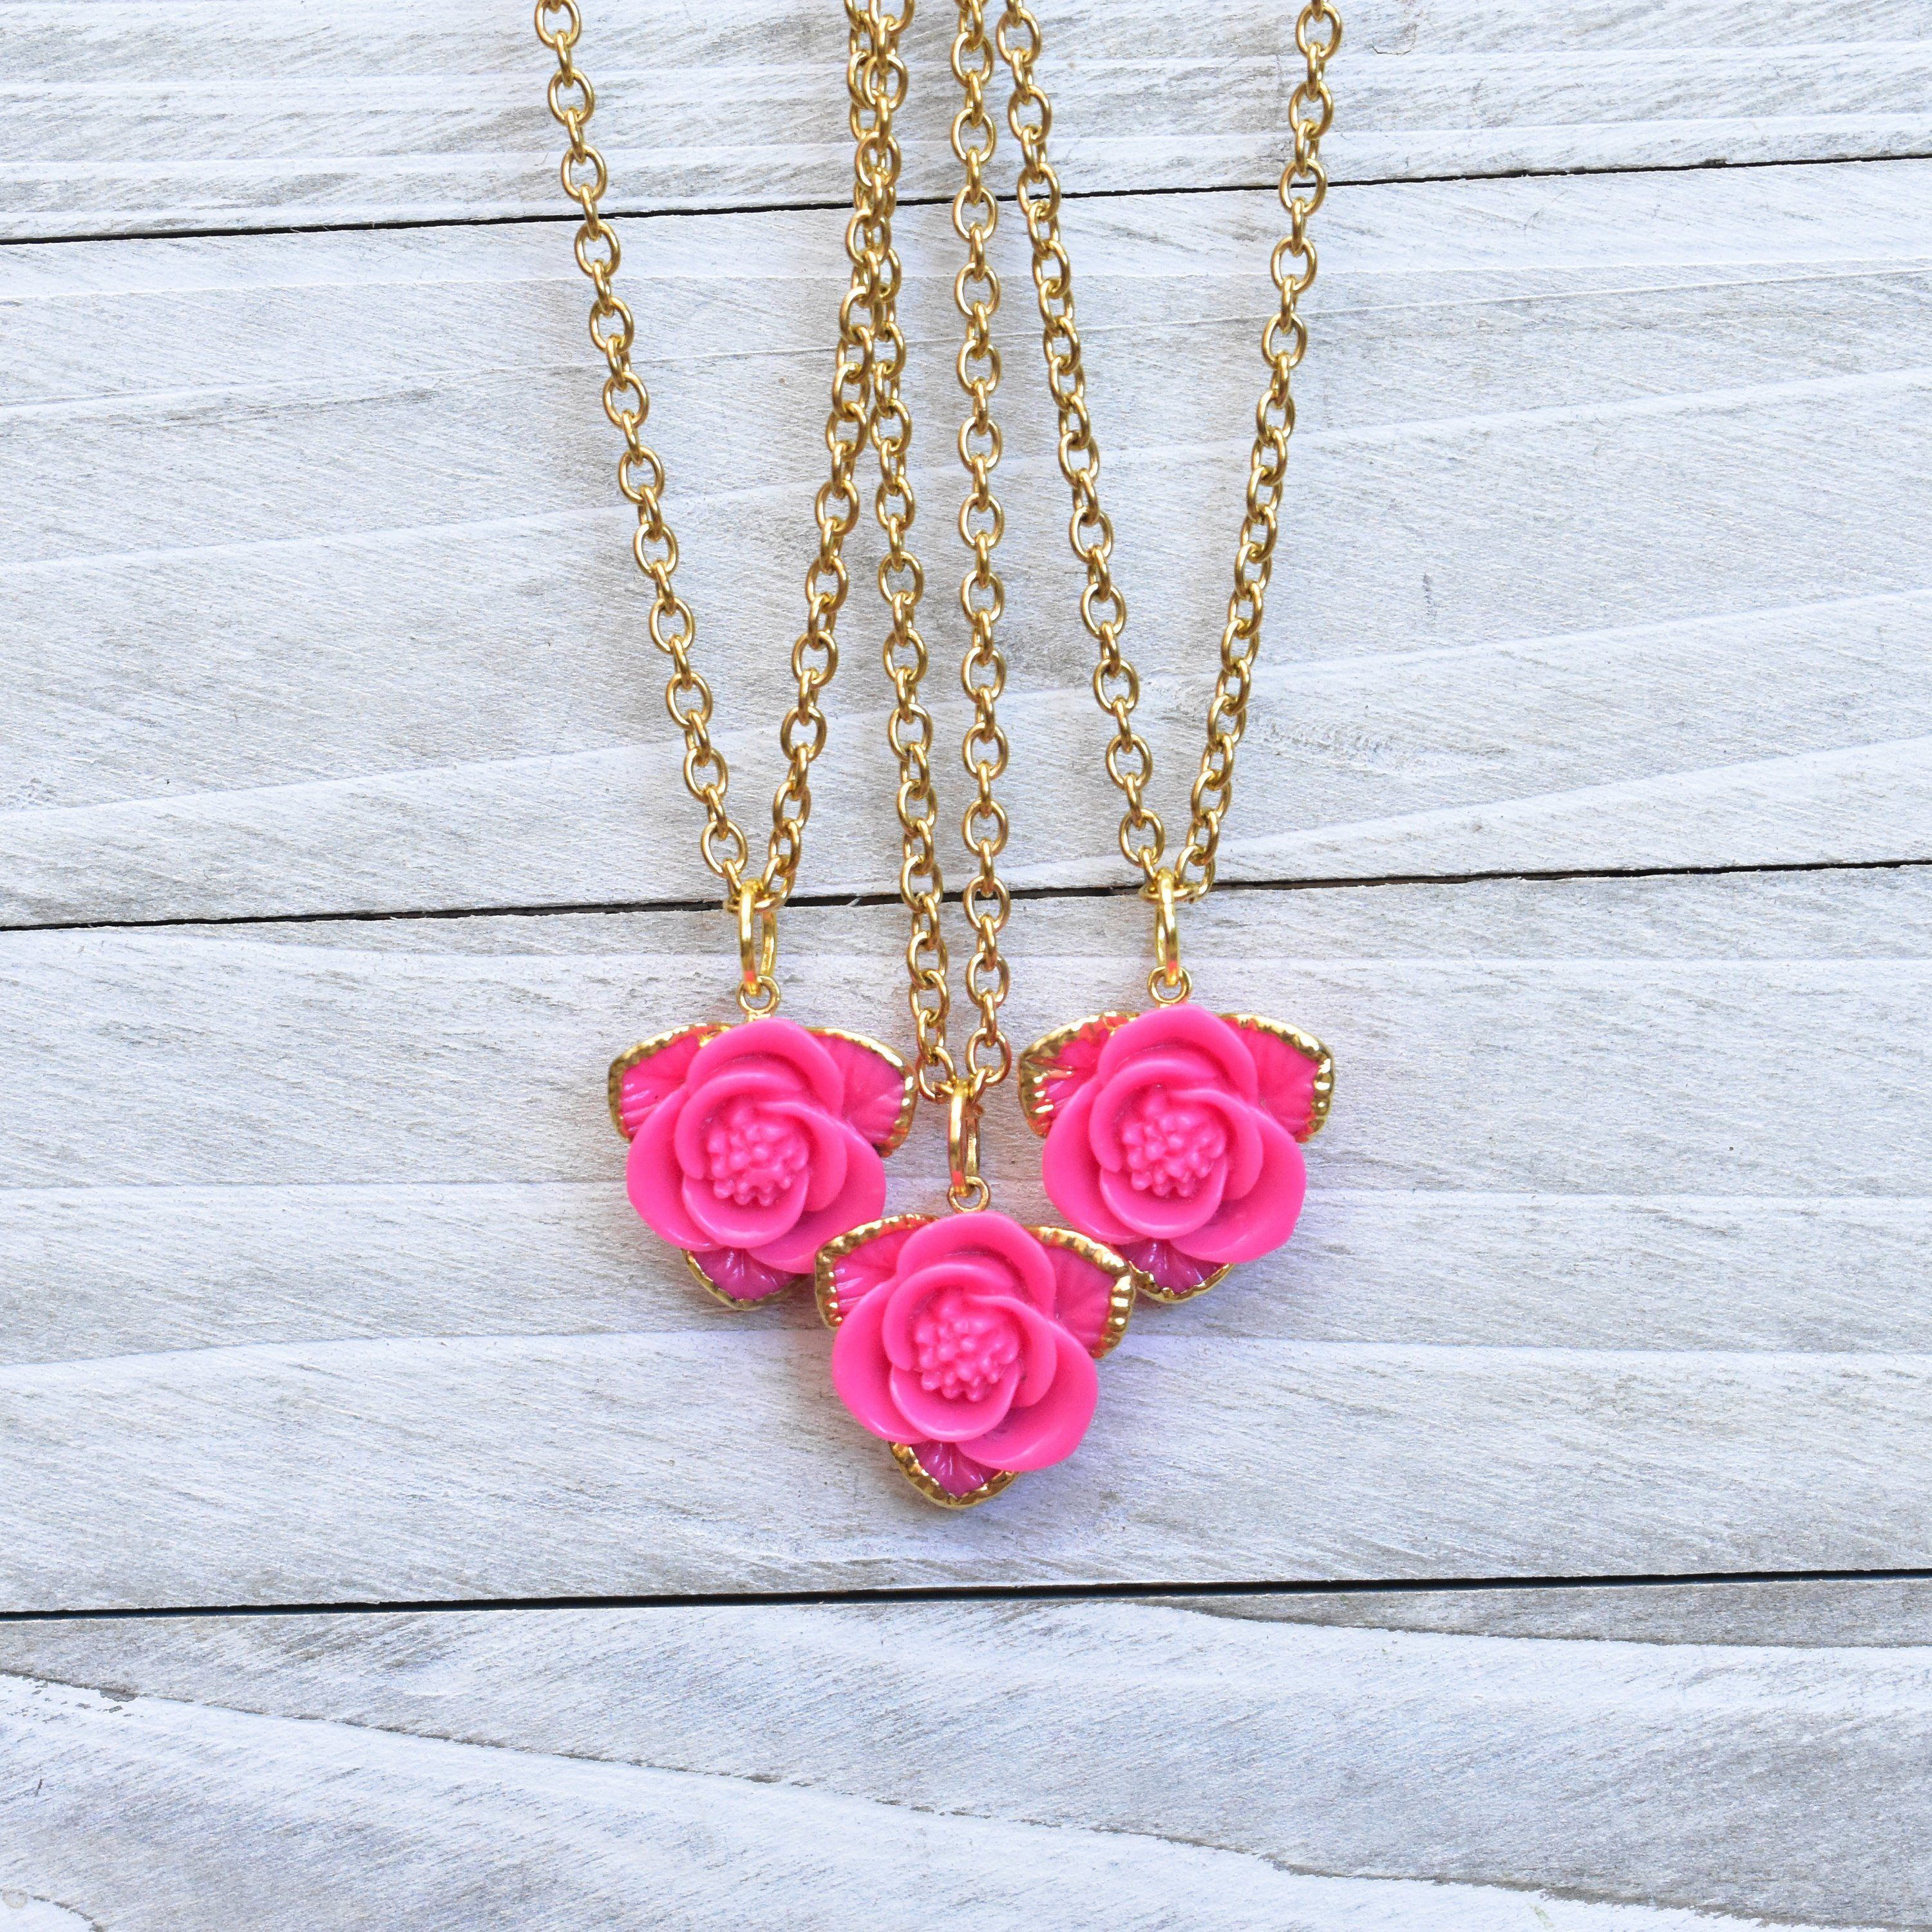 Rose charm on a Stainless steel Chain.